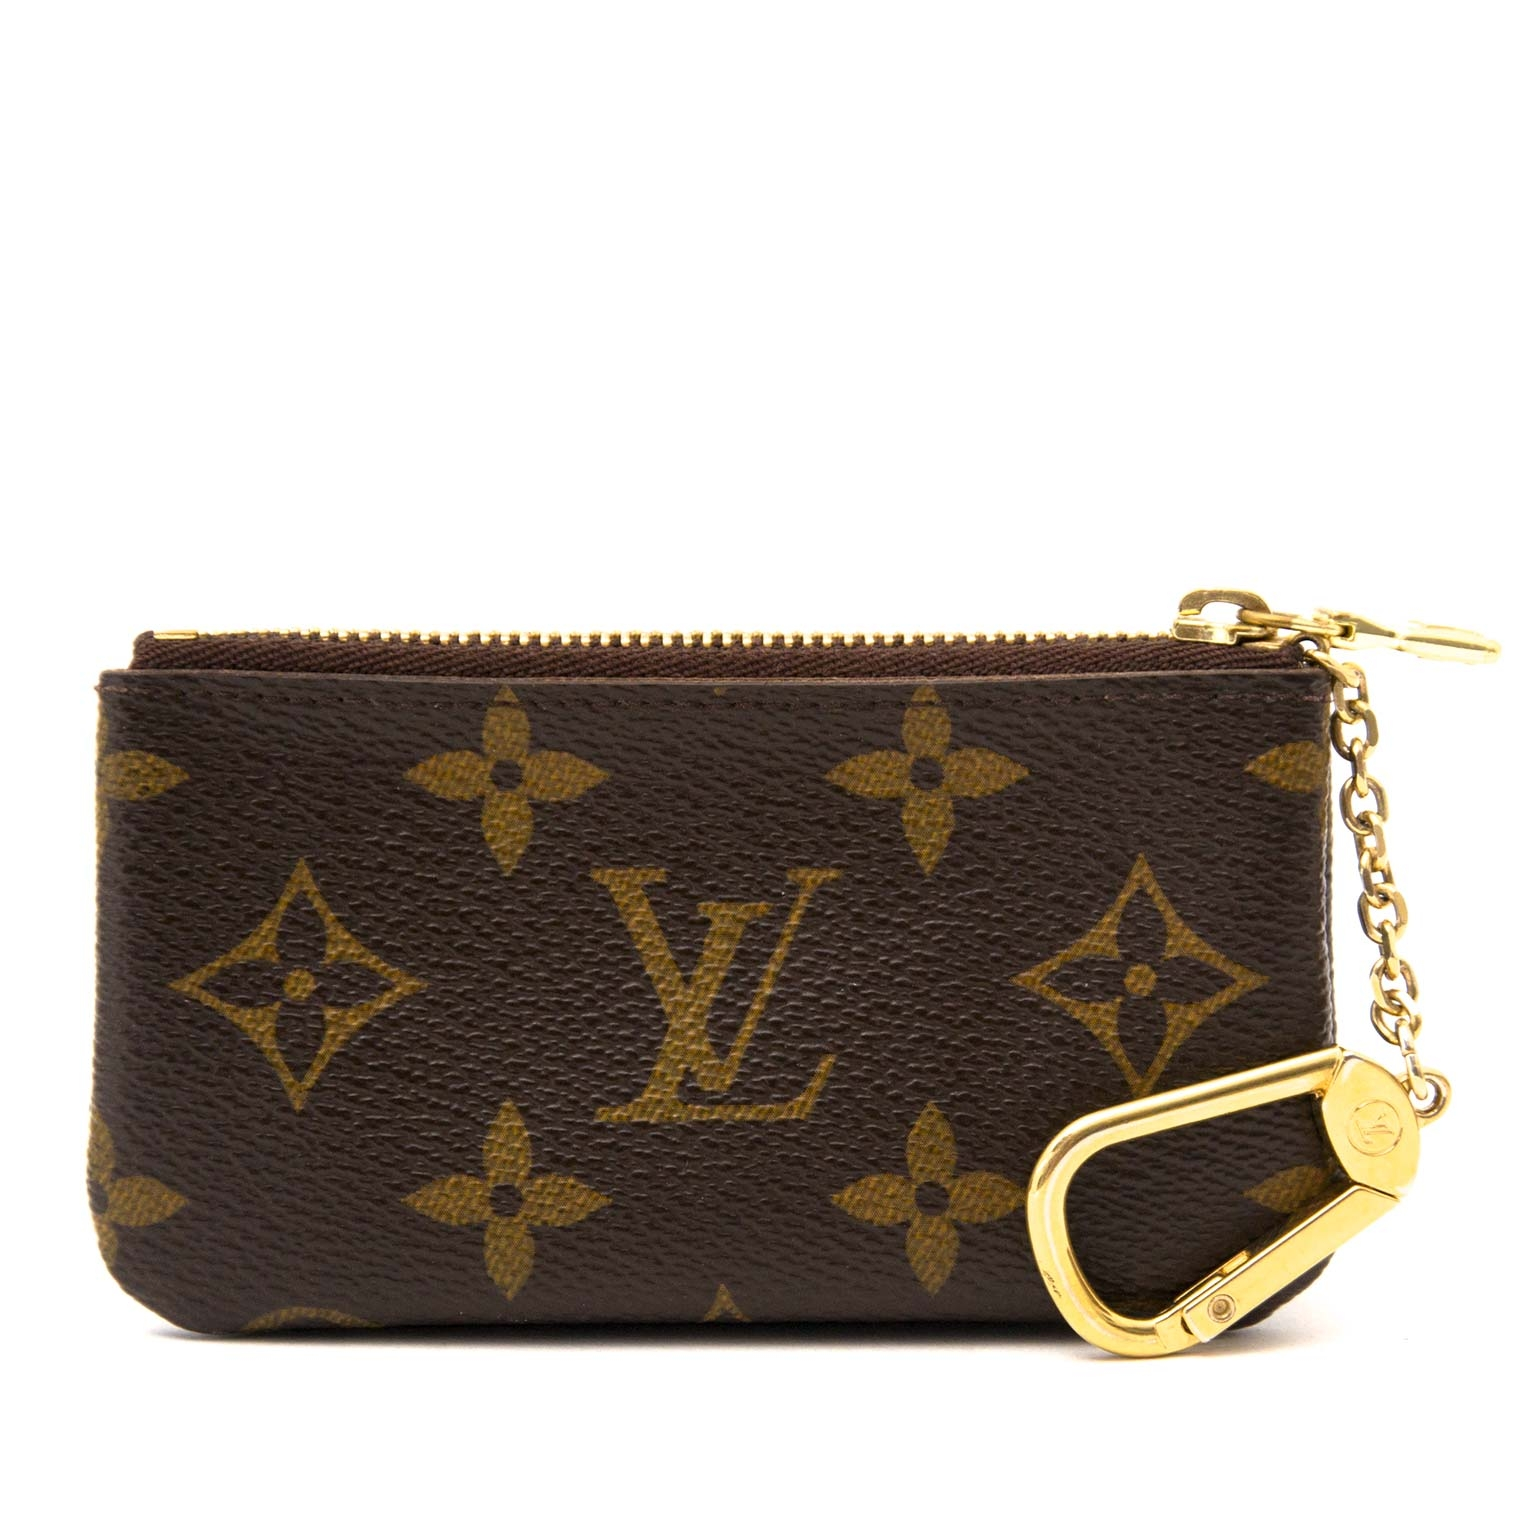 ... Buy your secondhand authentic Louis Vuitton key holder at the right  price at Labellov f0e50dd6af3a7